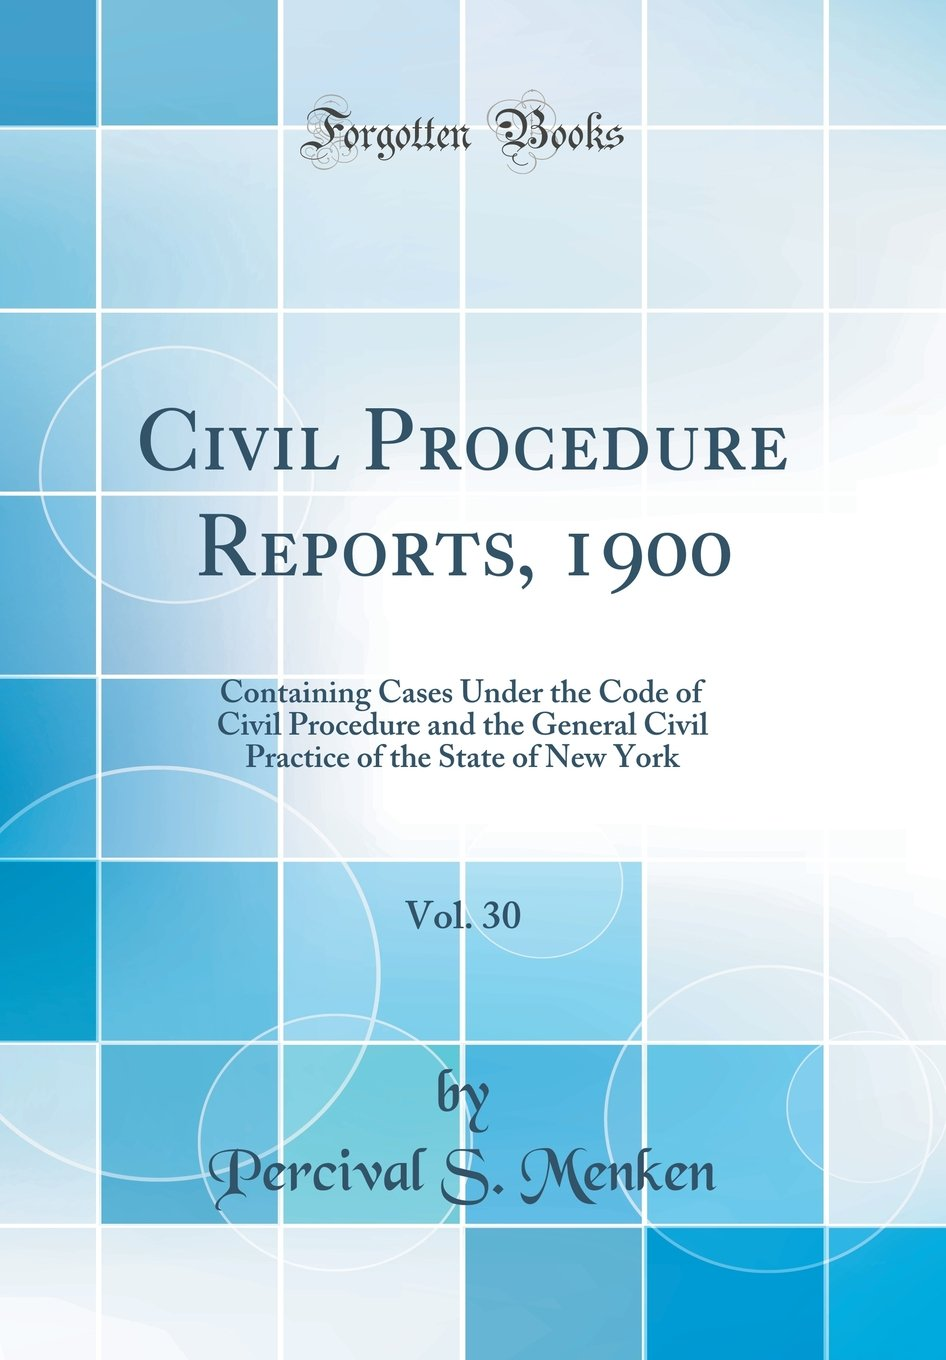 Civil Procedure Reports, 1900, Vol. 30: Containing Cases Under the Code of Civil Procedure and the General Civil Practice of the State of New York (Classic Reprint) pdf epub